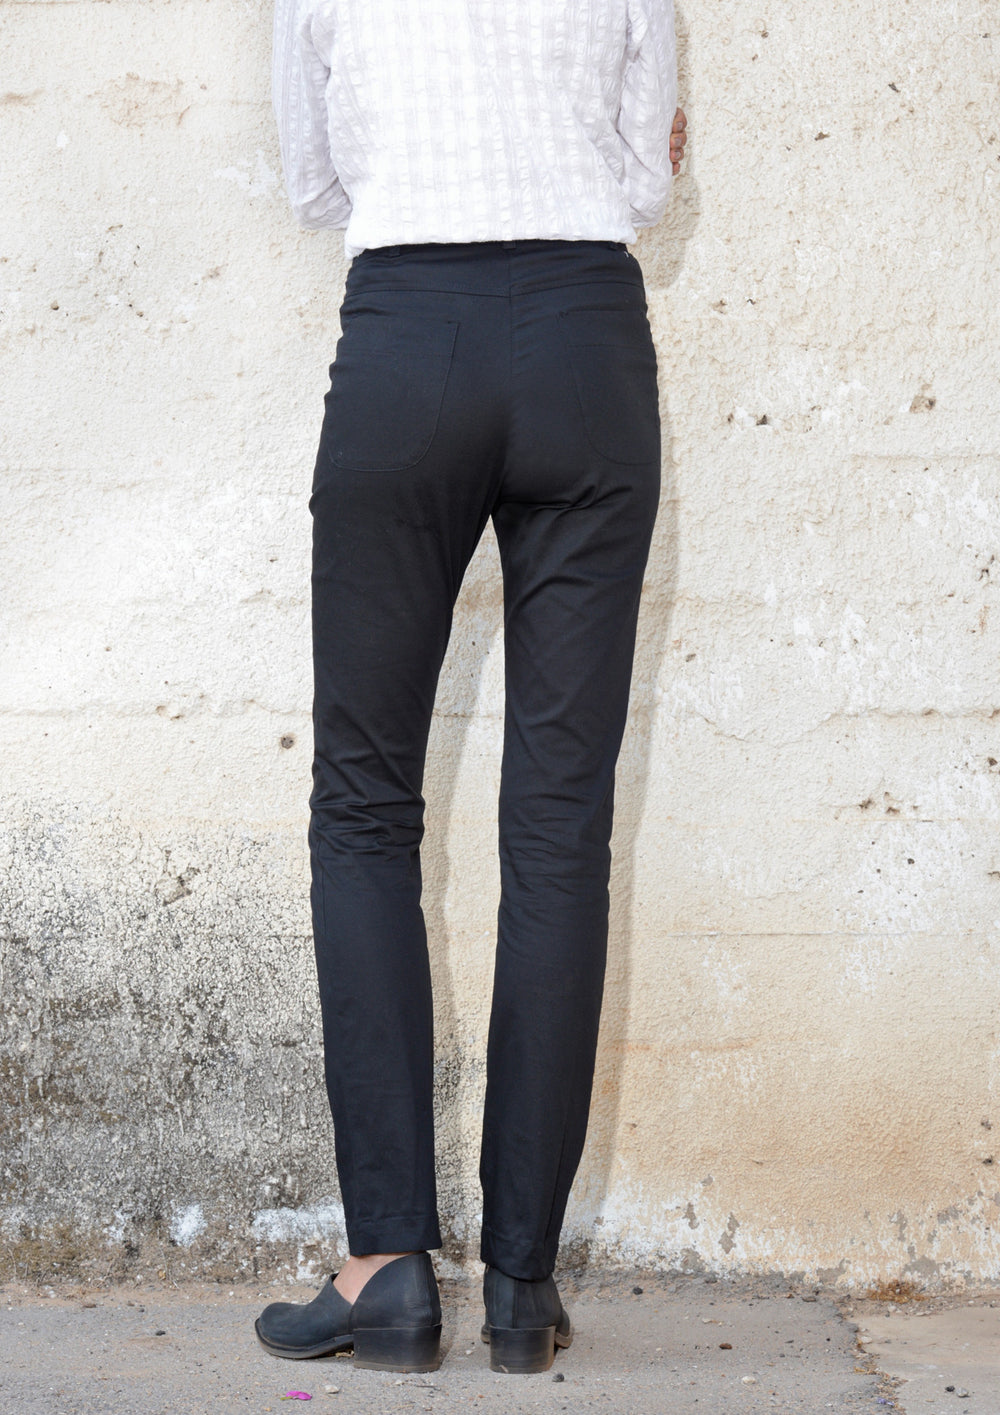 Skinny-fit trousers in black